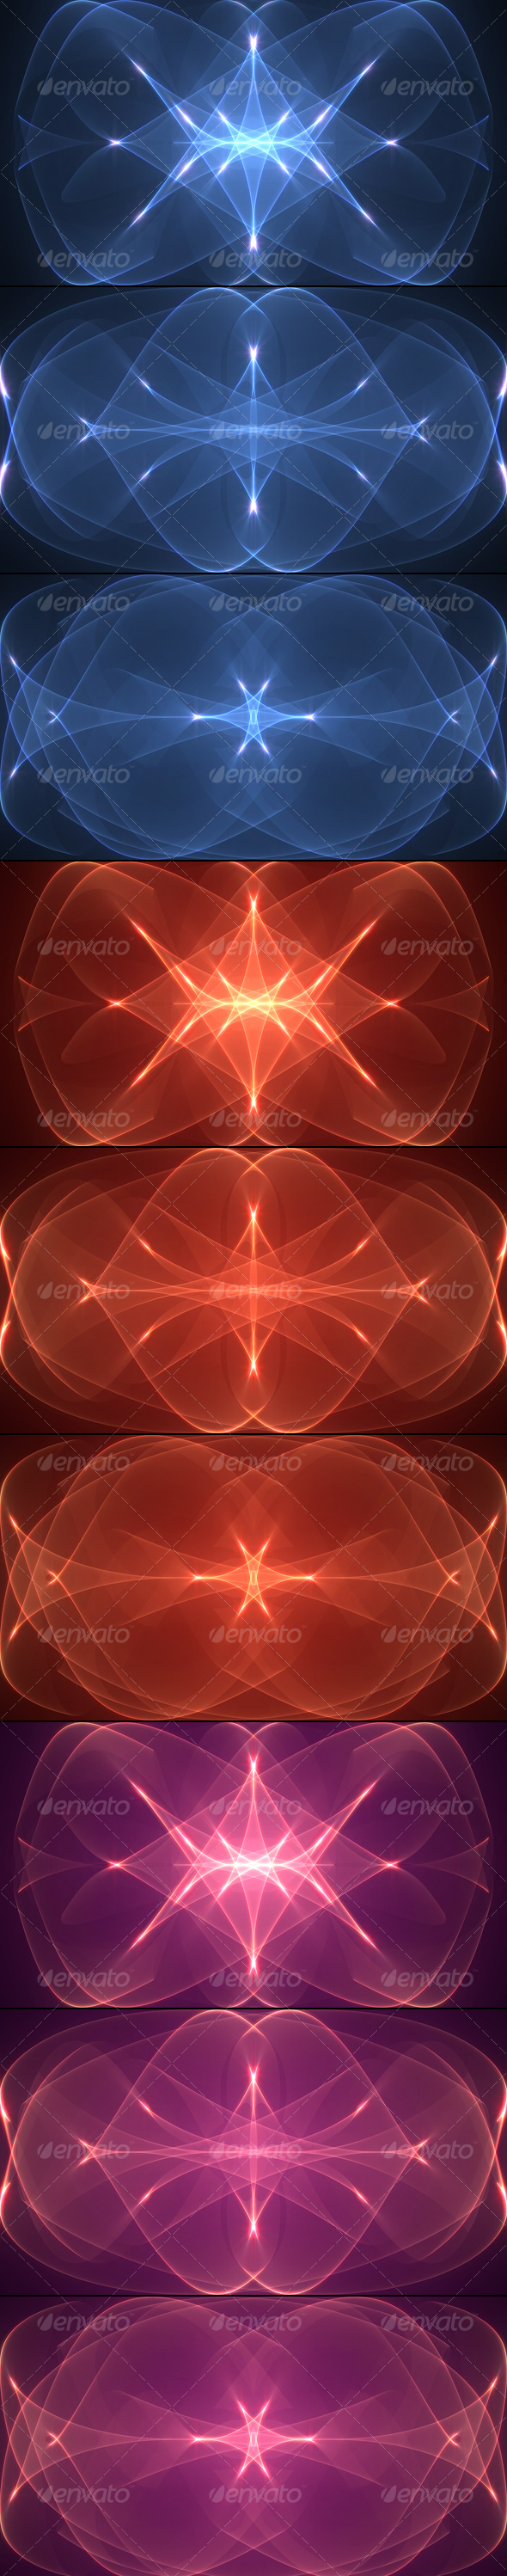 Abstract Backgrounds HD pack vol1 - Abstract Backgrounds